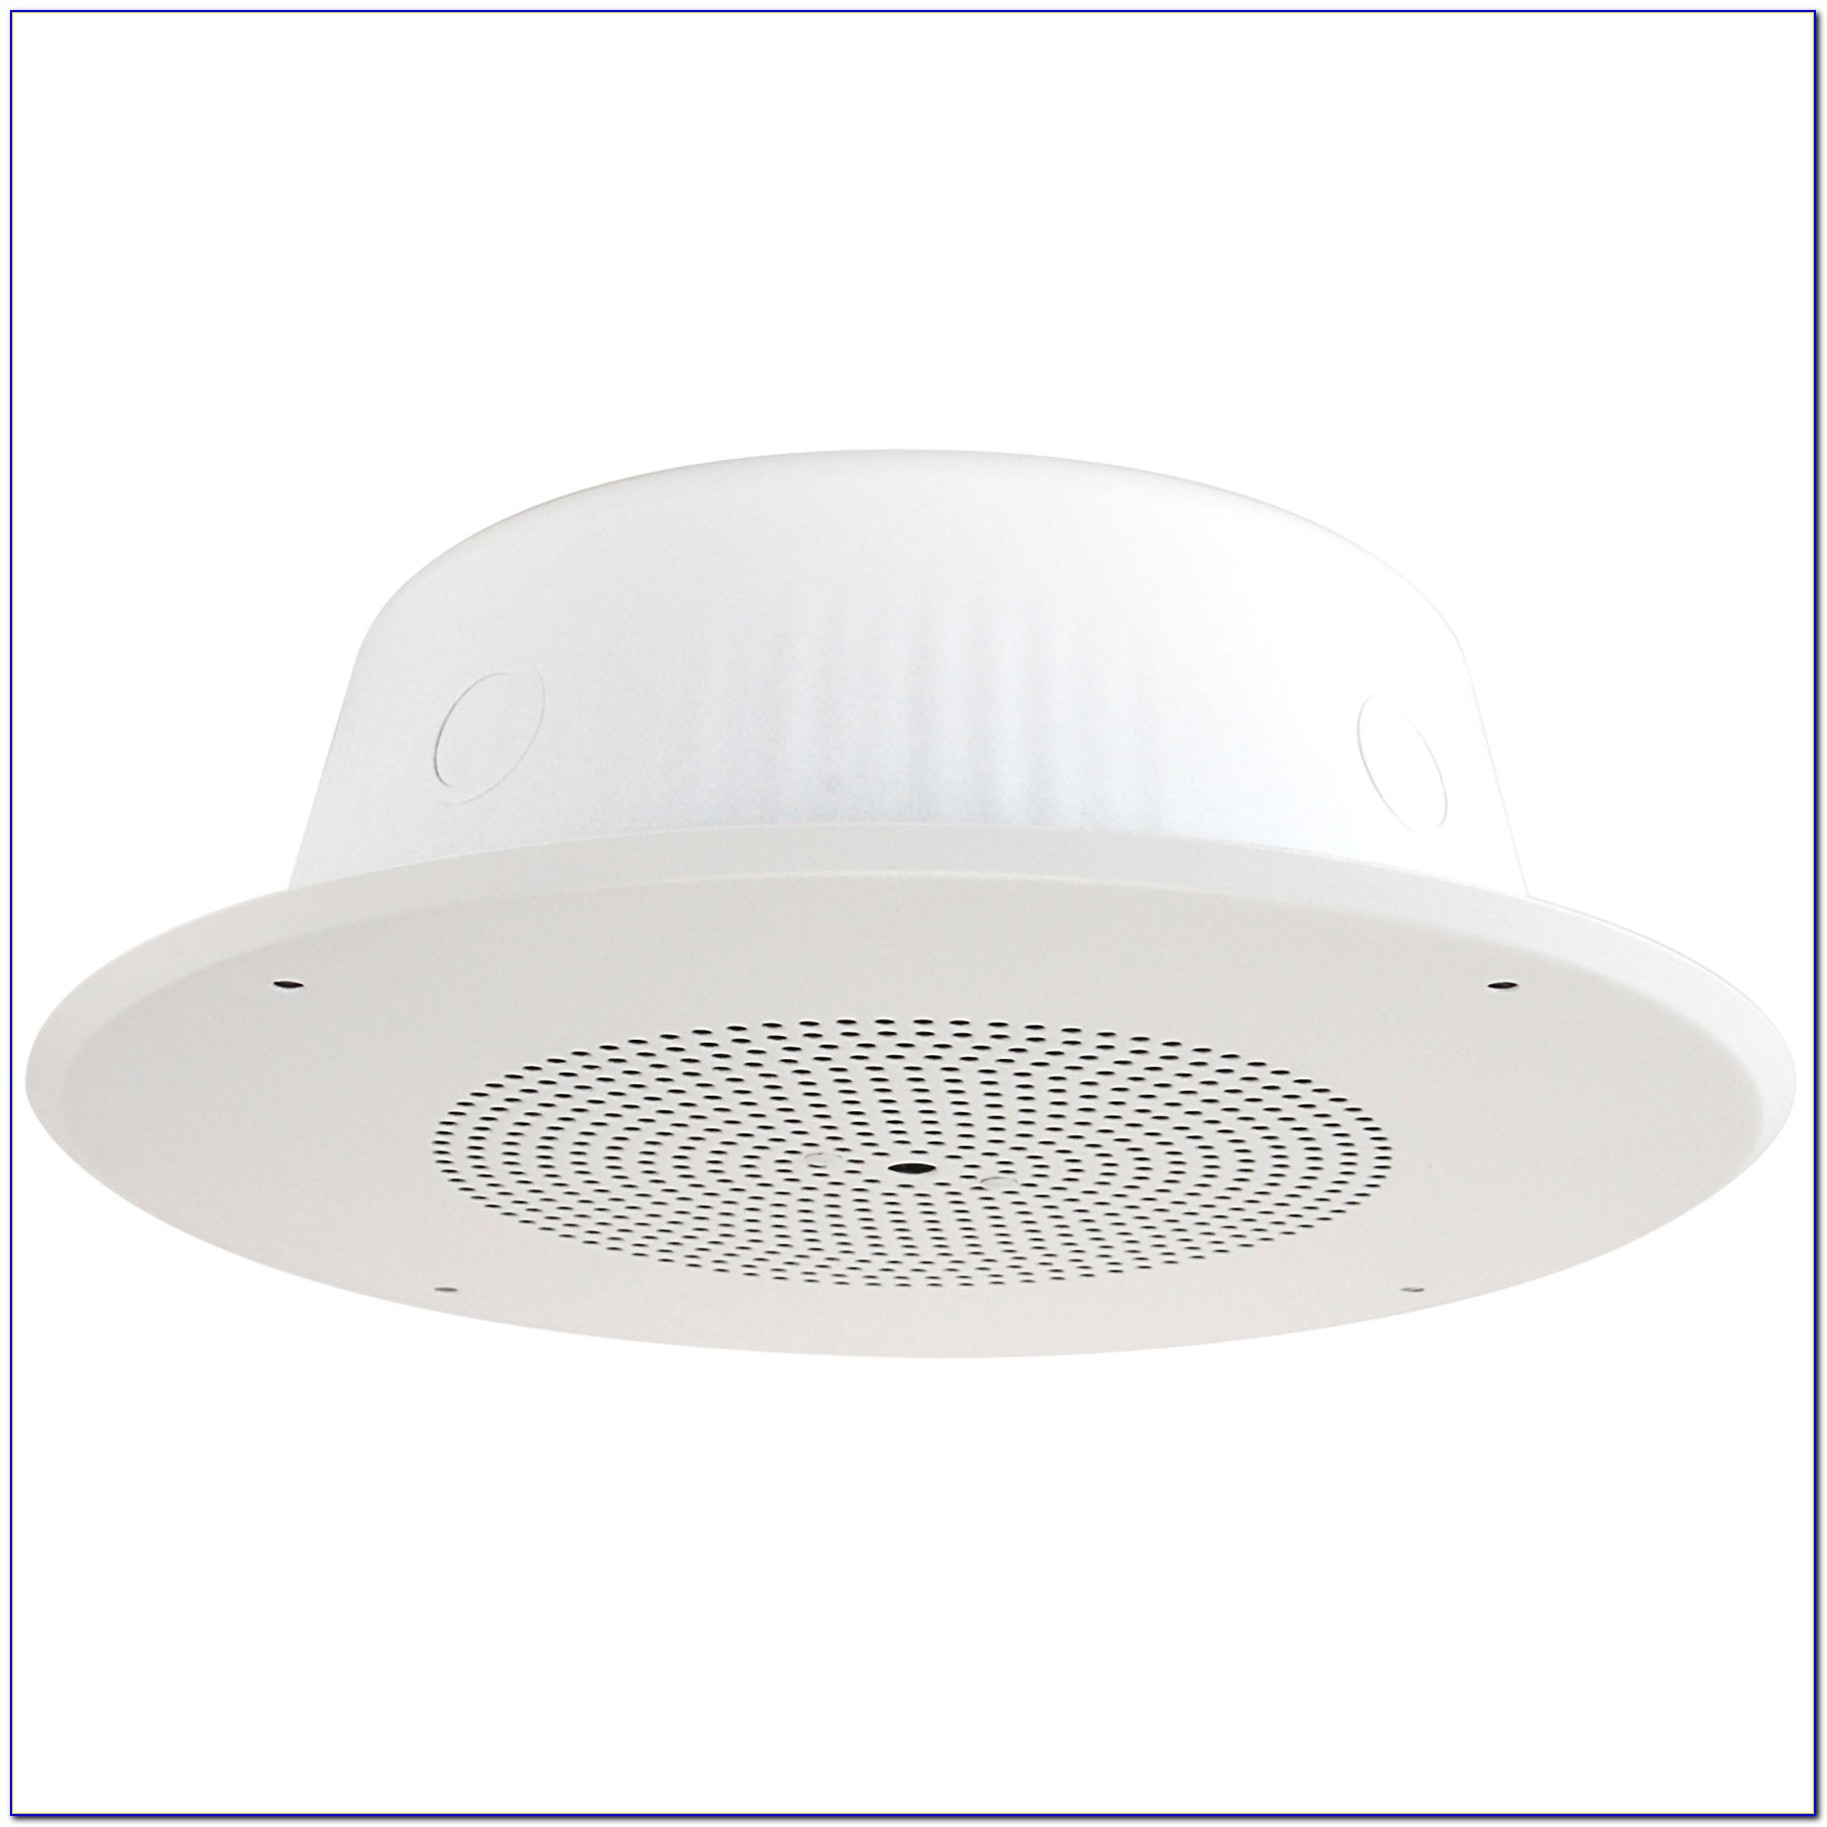 Ceiling Speaker Volume Control Switch